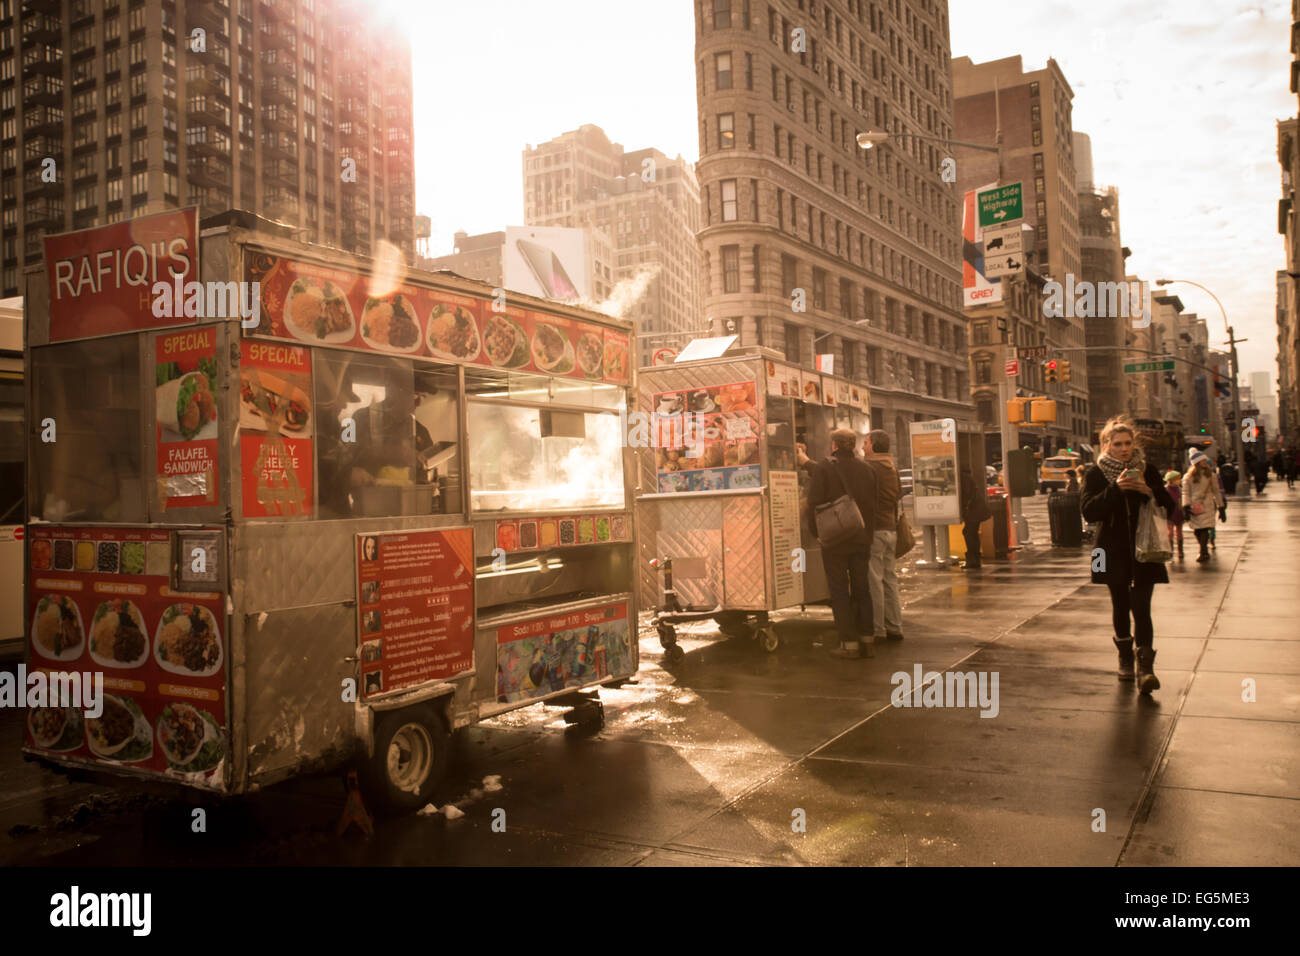 January 9, 2015 - New York City:  Street view along the Flatiron district near Madison Square Park of food cart - Stock Image